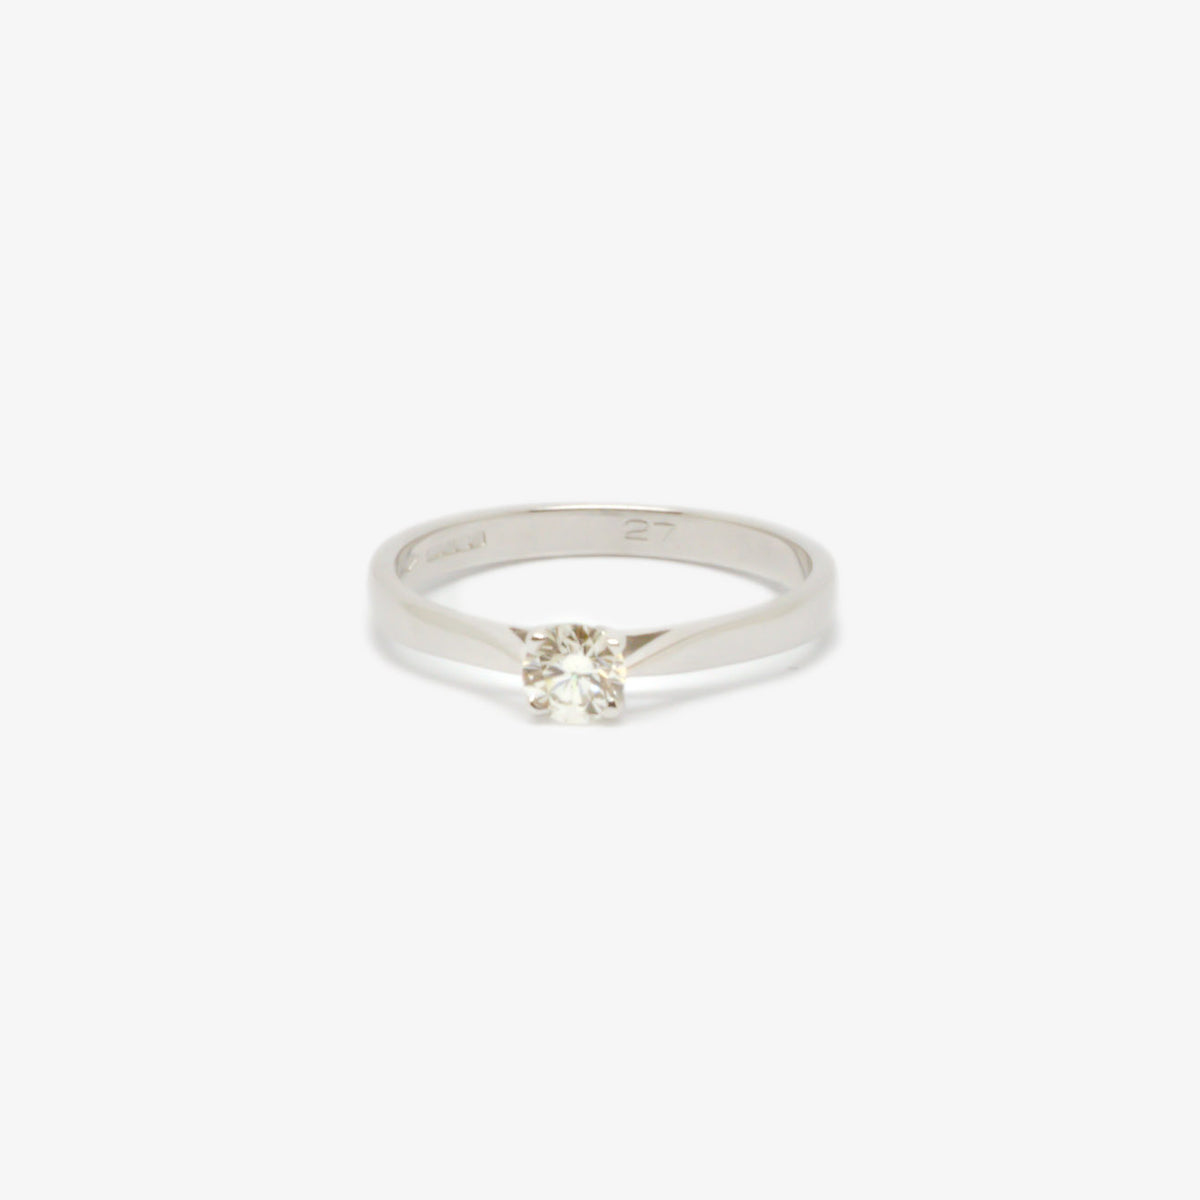 0.27 Carat Four Claw White Gold Diamond Solitaire Ring